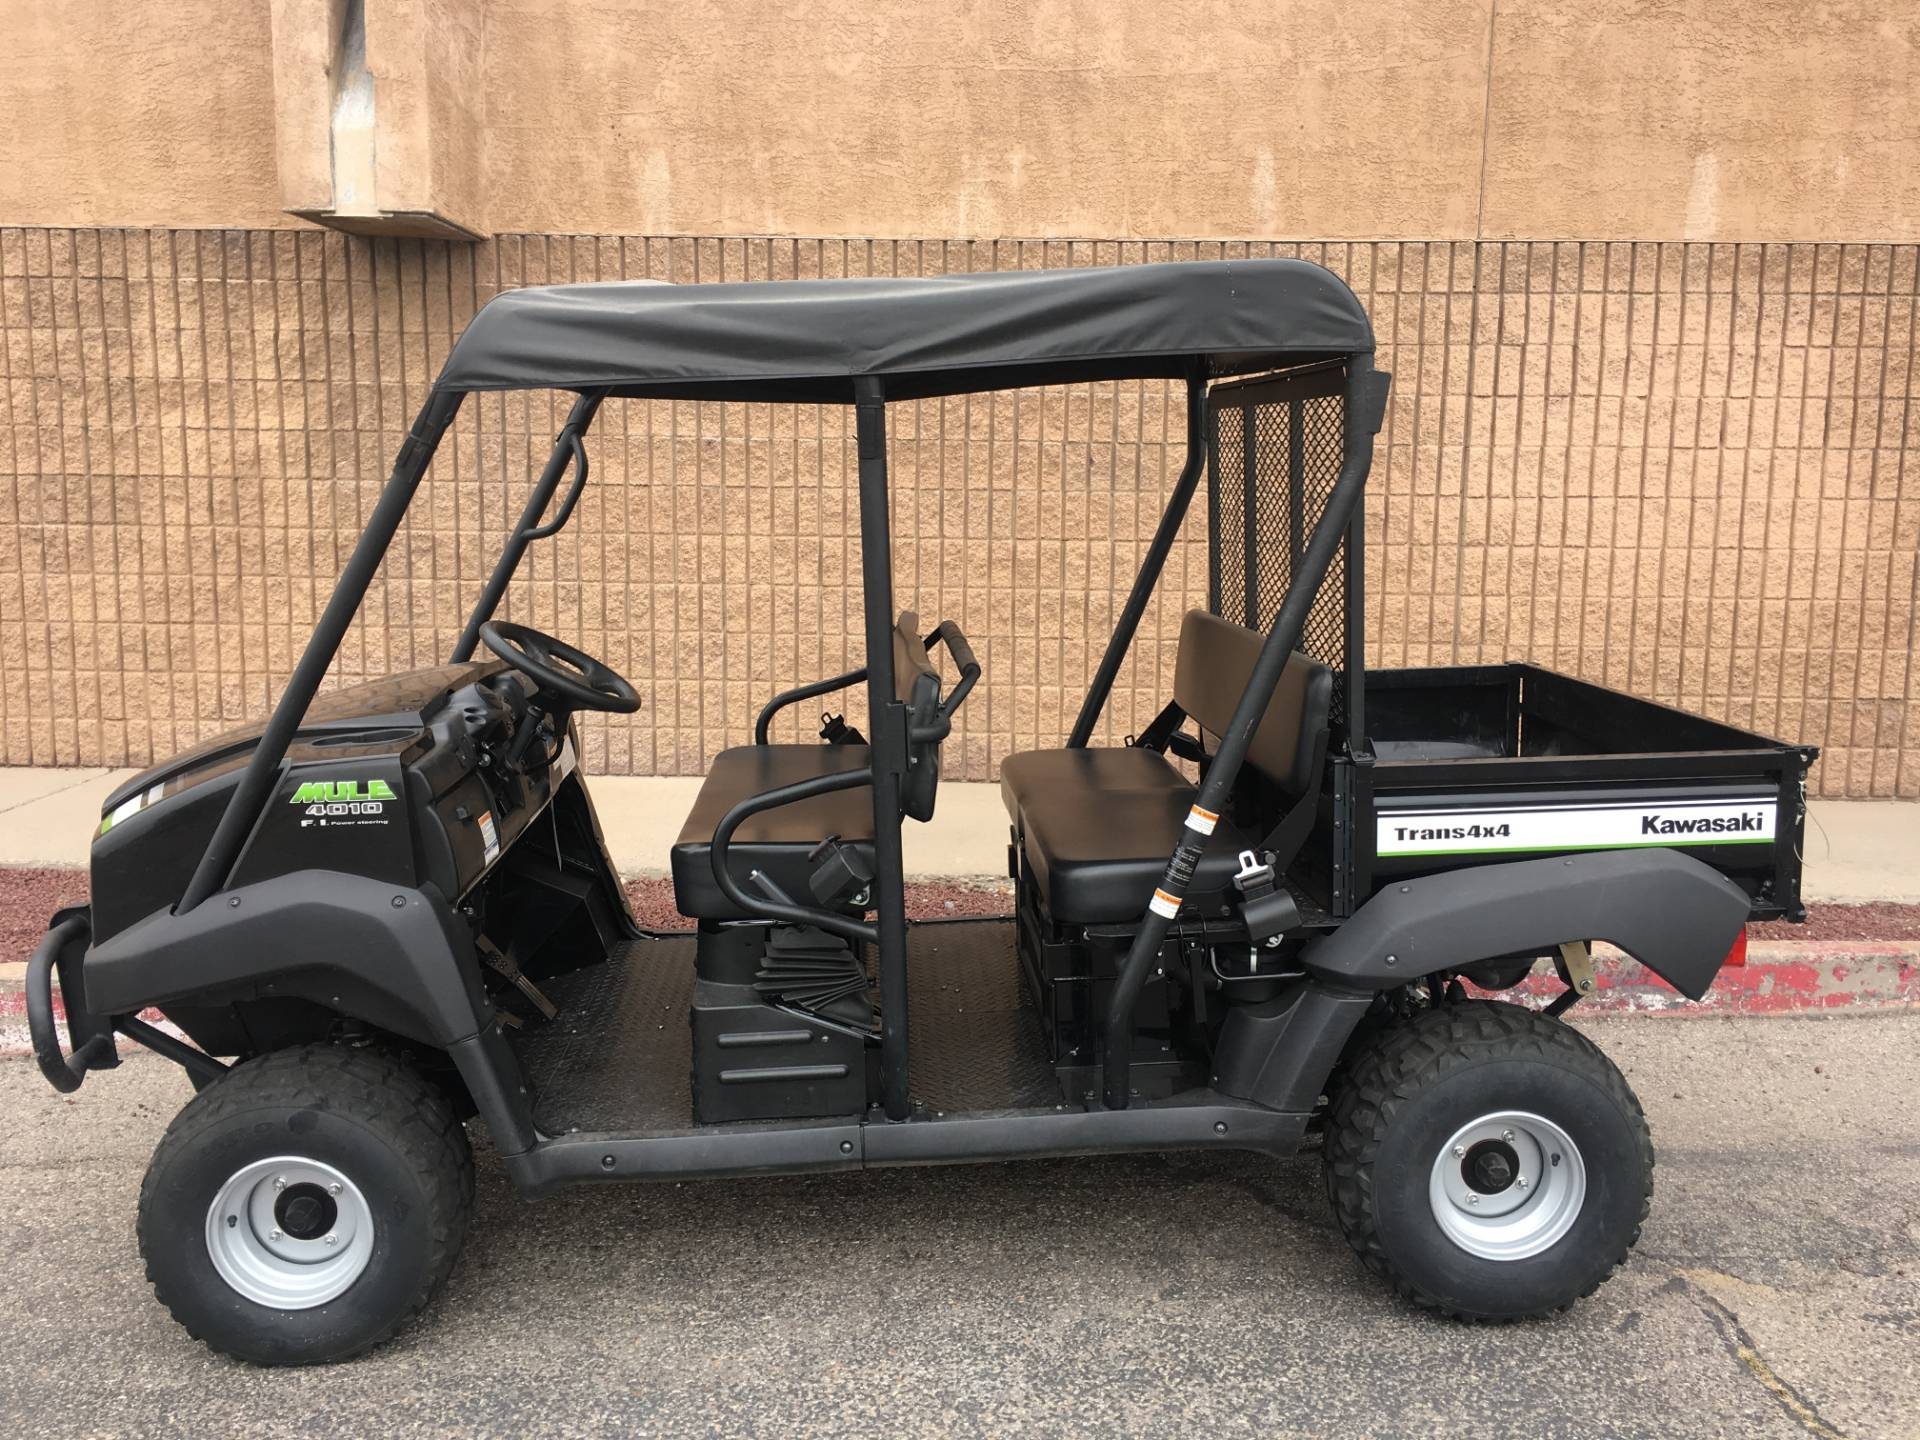 Kawasaki Mule 4010 Fuel Filter Free Download Wiring Diagram Prairie Used 2015 Trans4x4 Utility Vehicles In Together With 3010